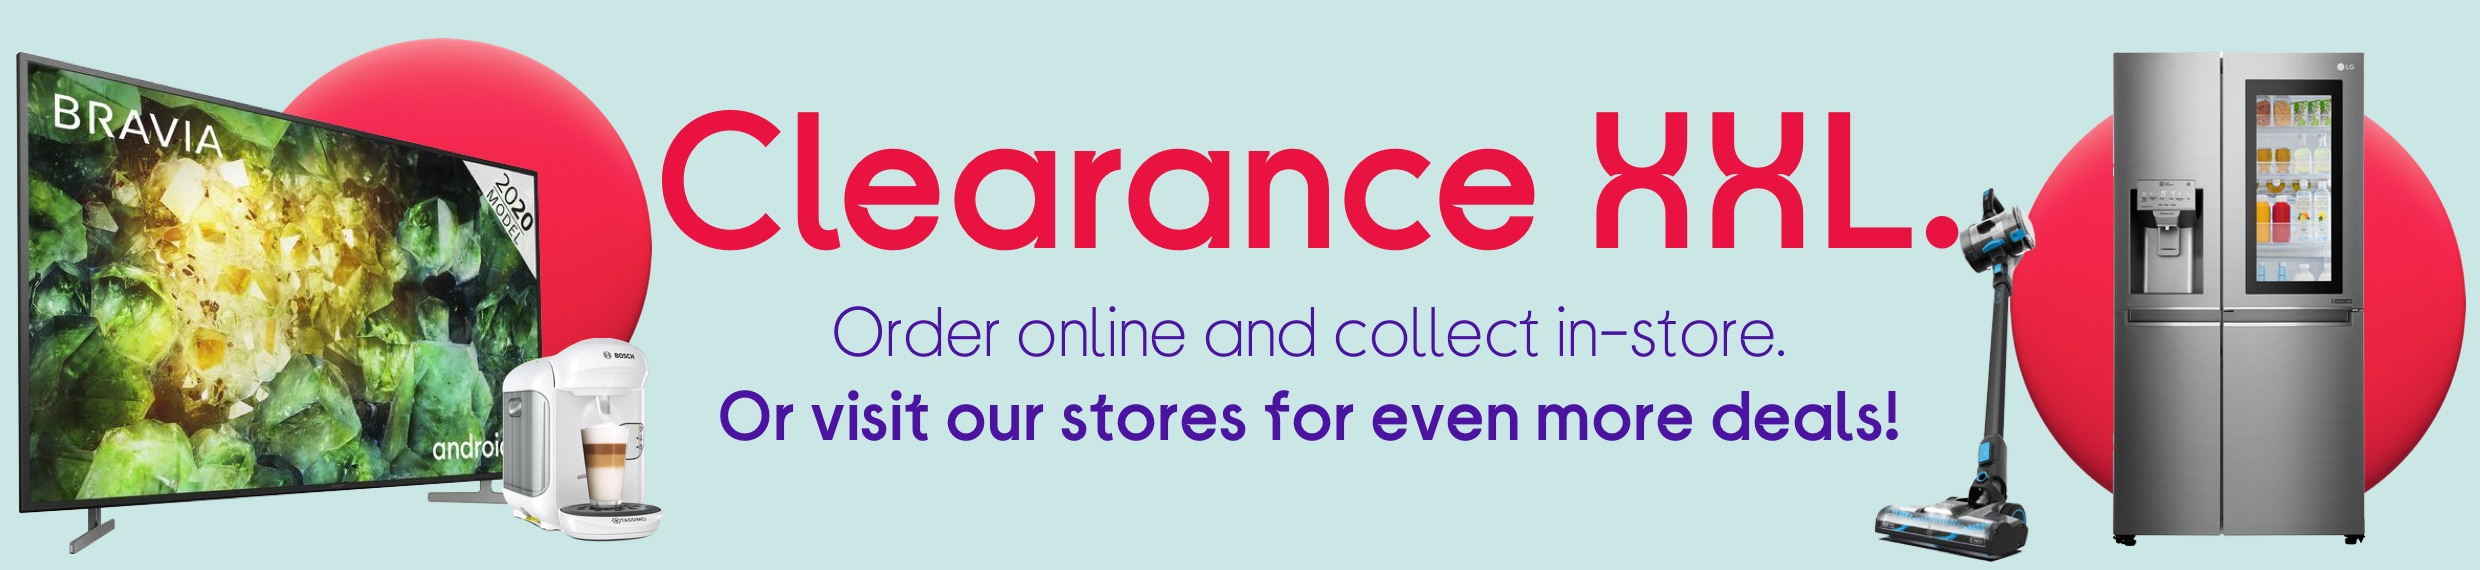 Clearance at Currys PC World